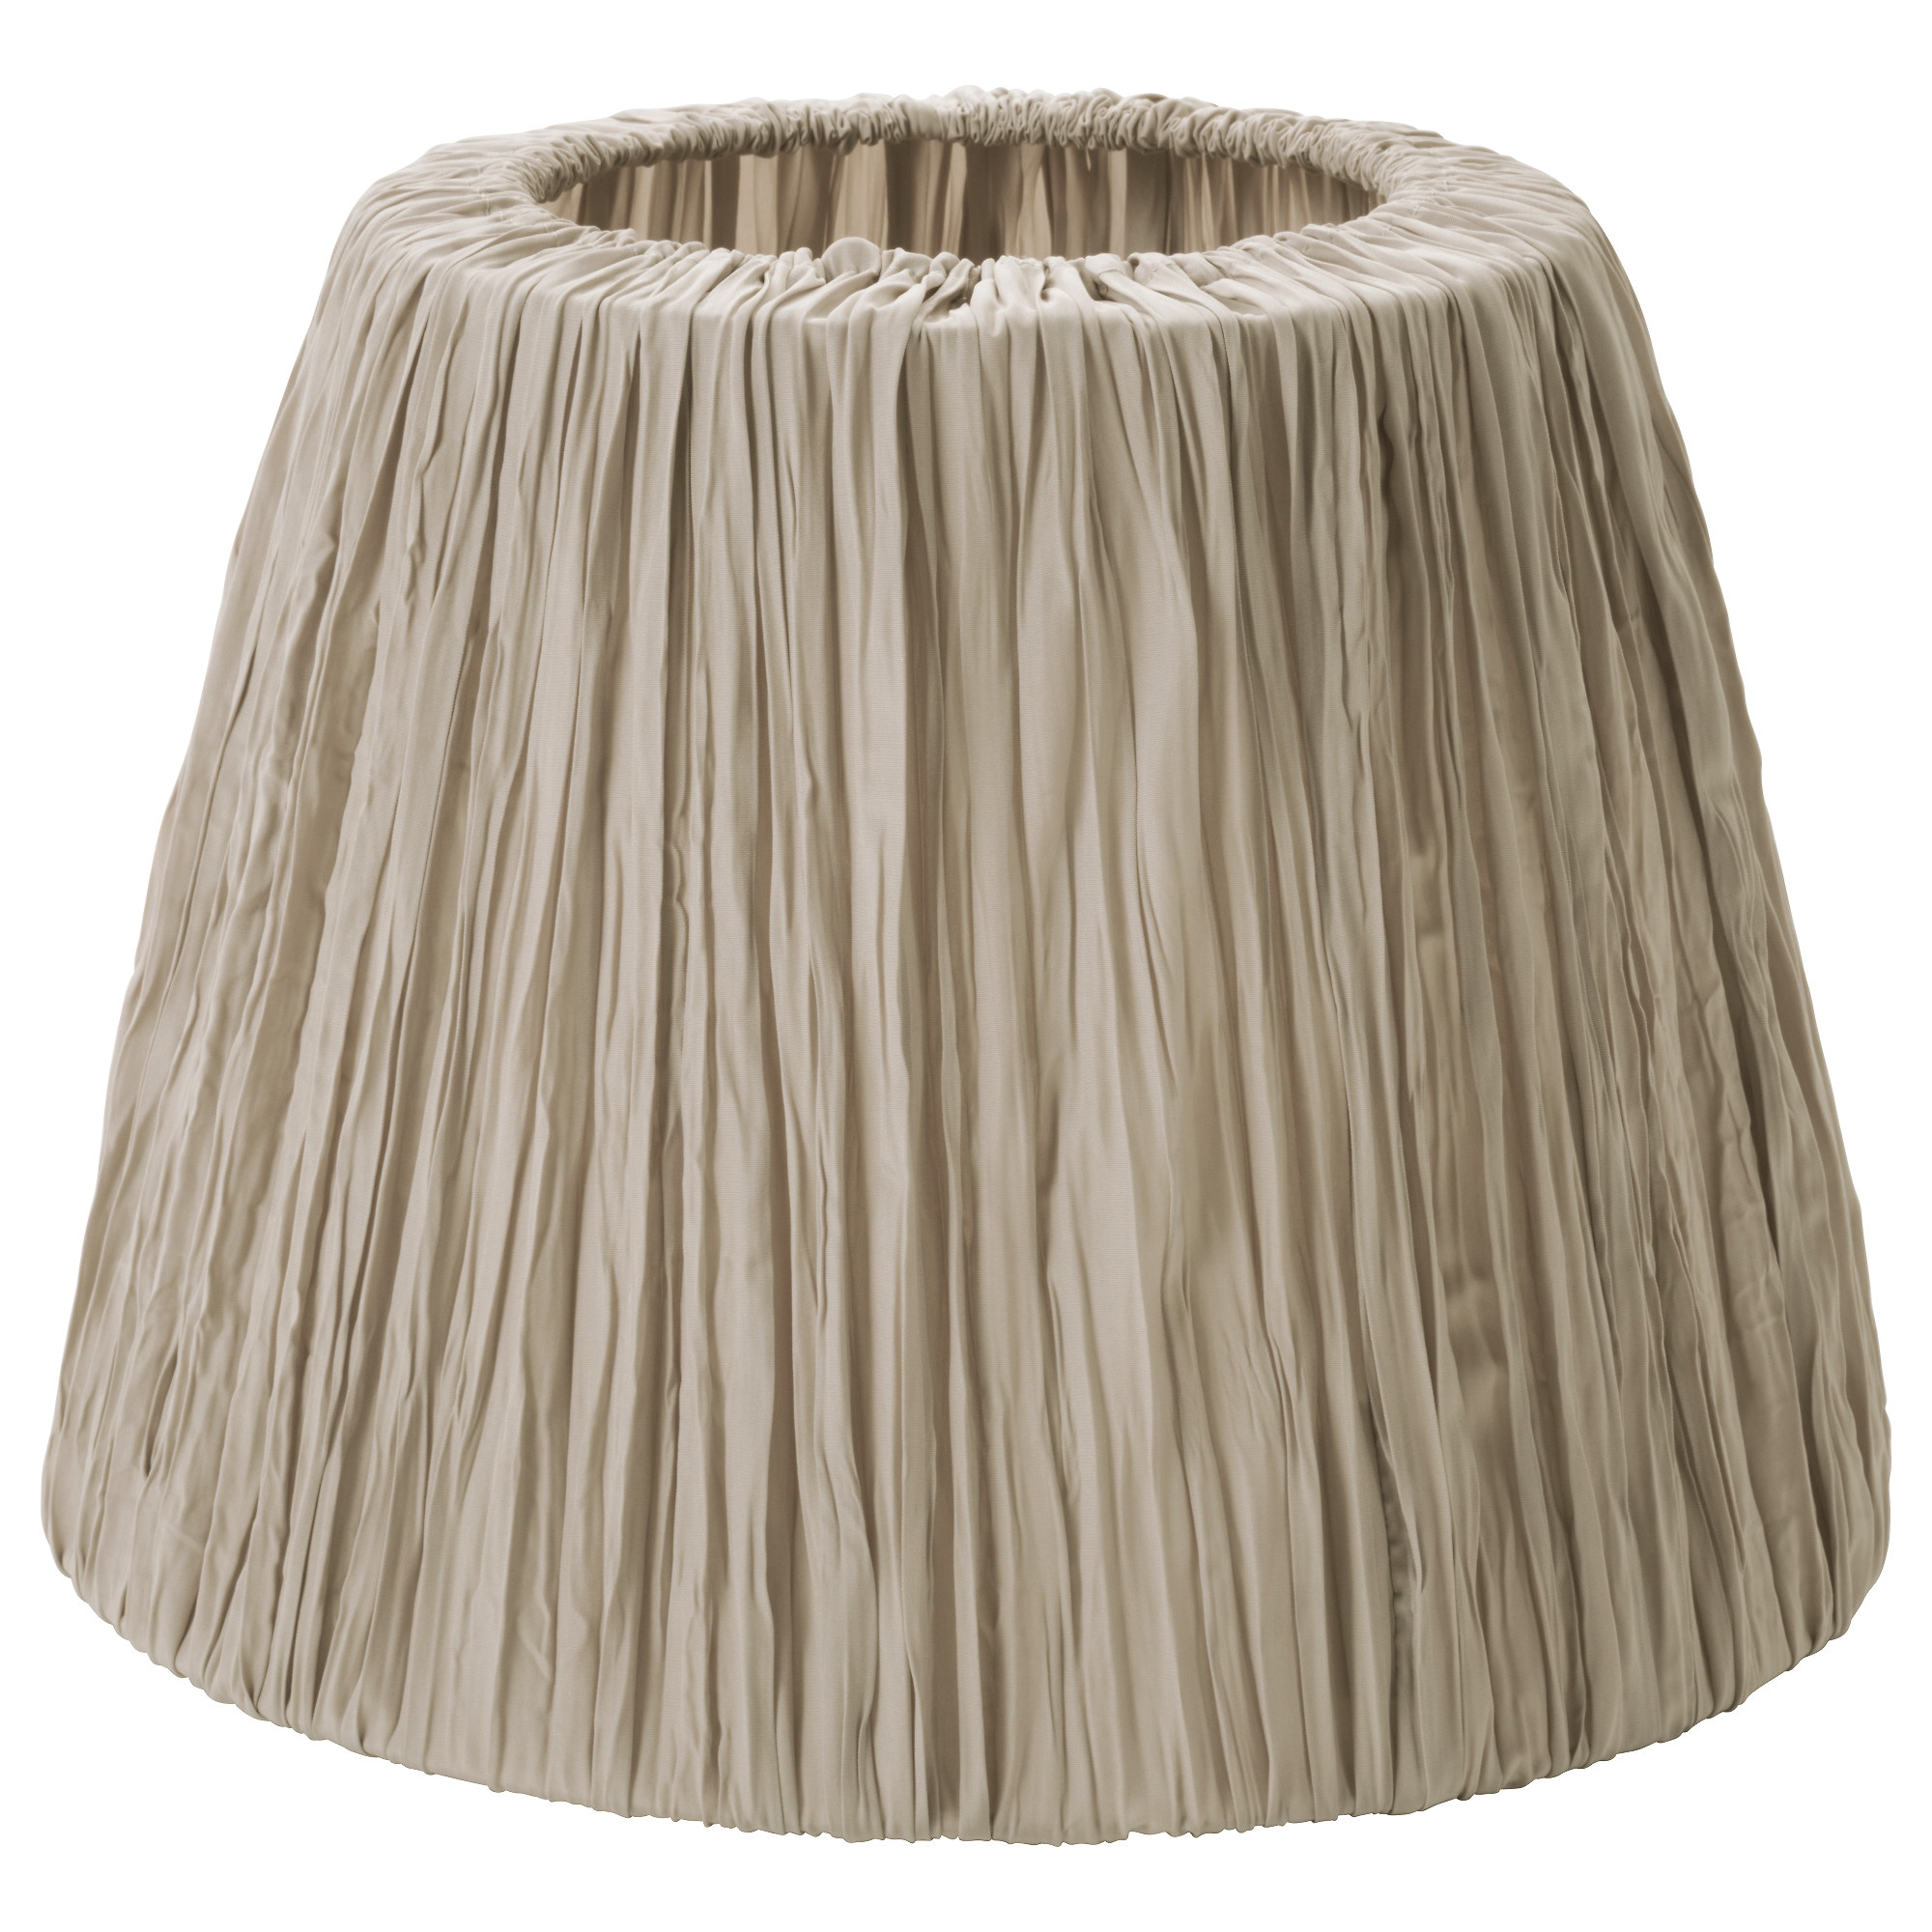 Lamp Shades - IKEA for Bamboo Lamp Shade Ikea  177nar